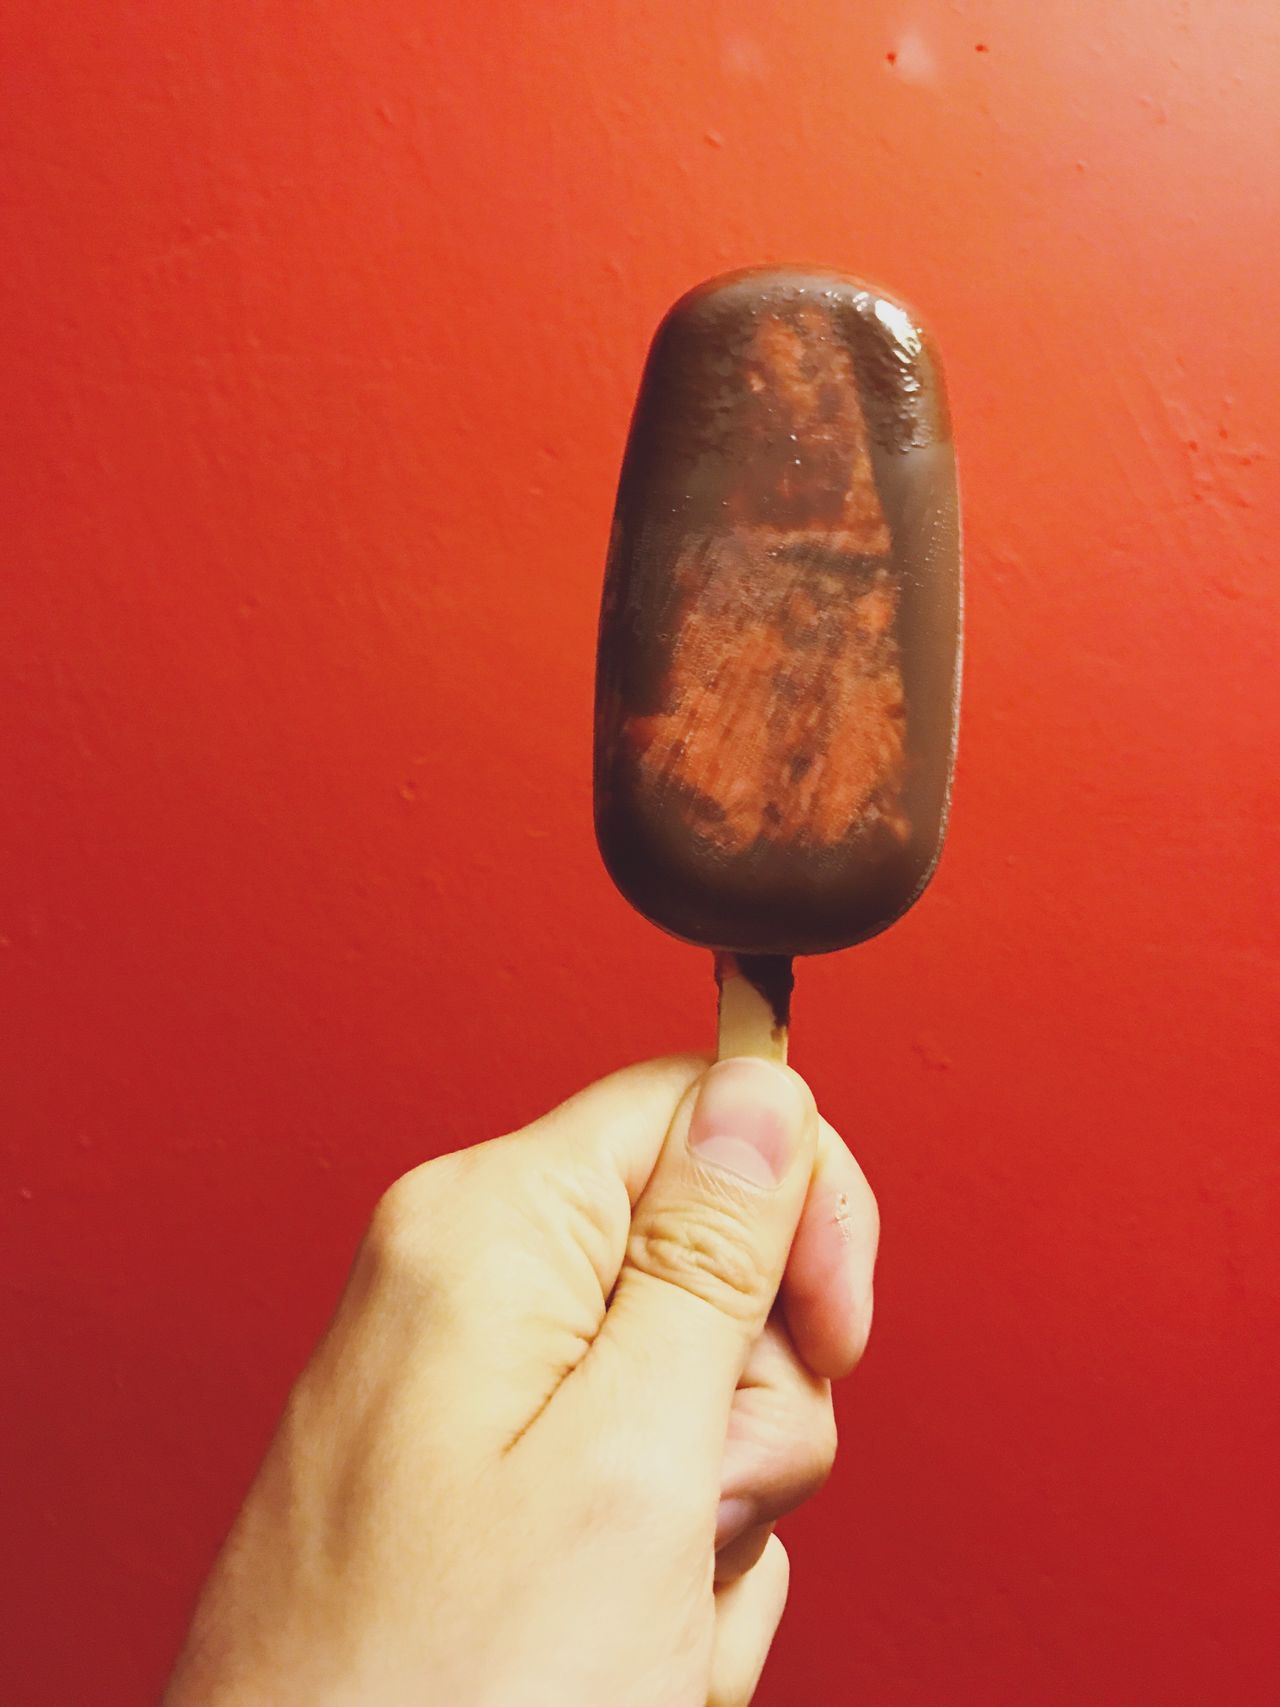 Ice Cream Popsicle Hand Holding Frozen Food Sweet Food Human Hand Human Body Part Human Finger Food And Drink Food Personal Perspective One Person Real People Red Close-up Unhealthy Eating Flavored Ice Freshness Indoors  Ready-to-eat Day